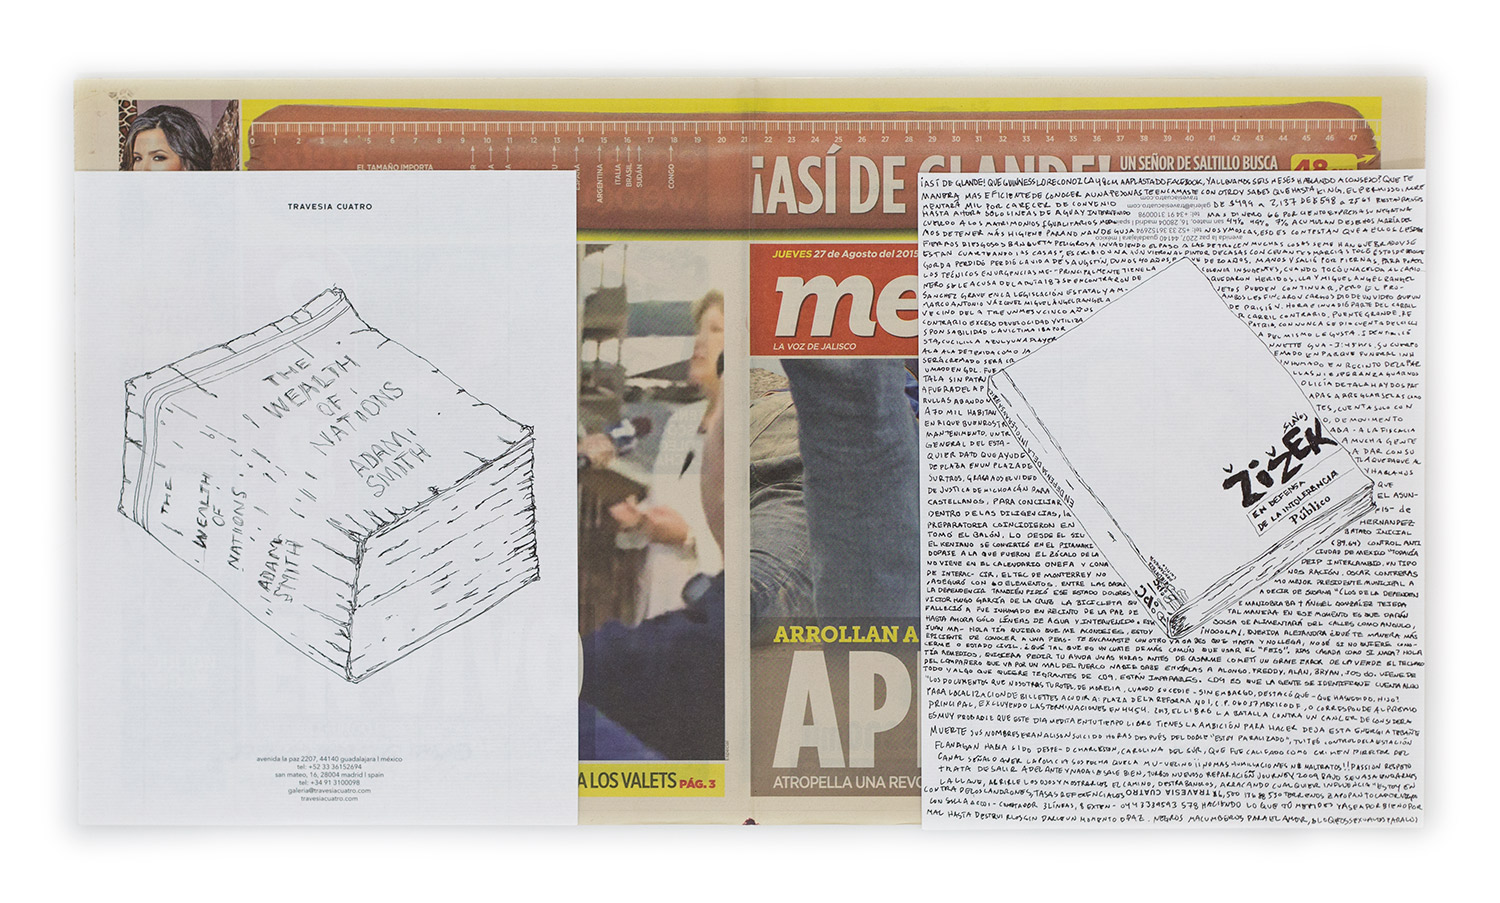 Political Drawing (Metro: Guadalajara, Mexico, Jueves 27 Agosto 2015)    2015   Ink on paper, daily newspaper  12 1/2 x 22 3/4 inches   Drawings, 2014–